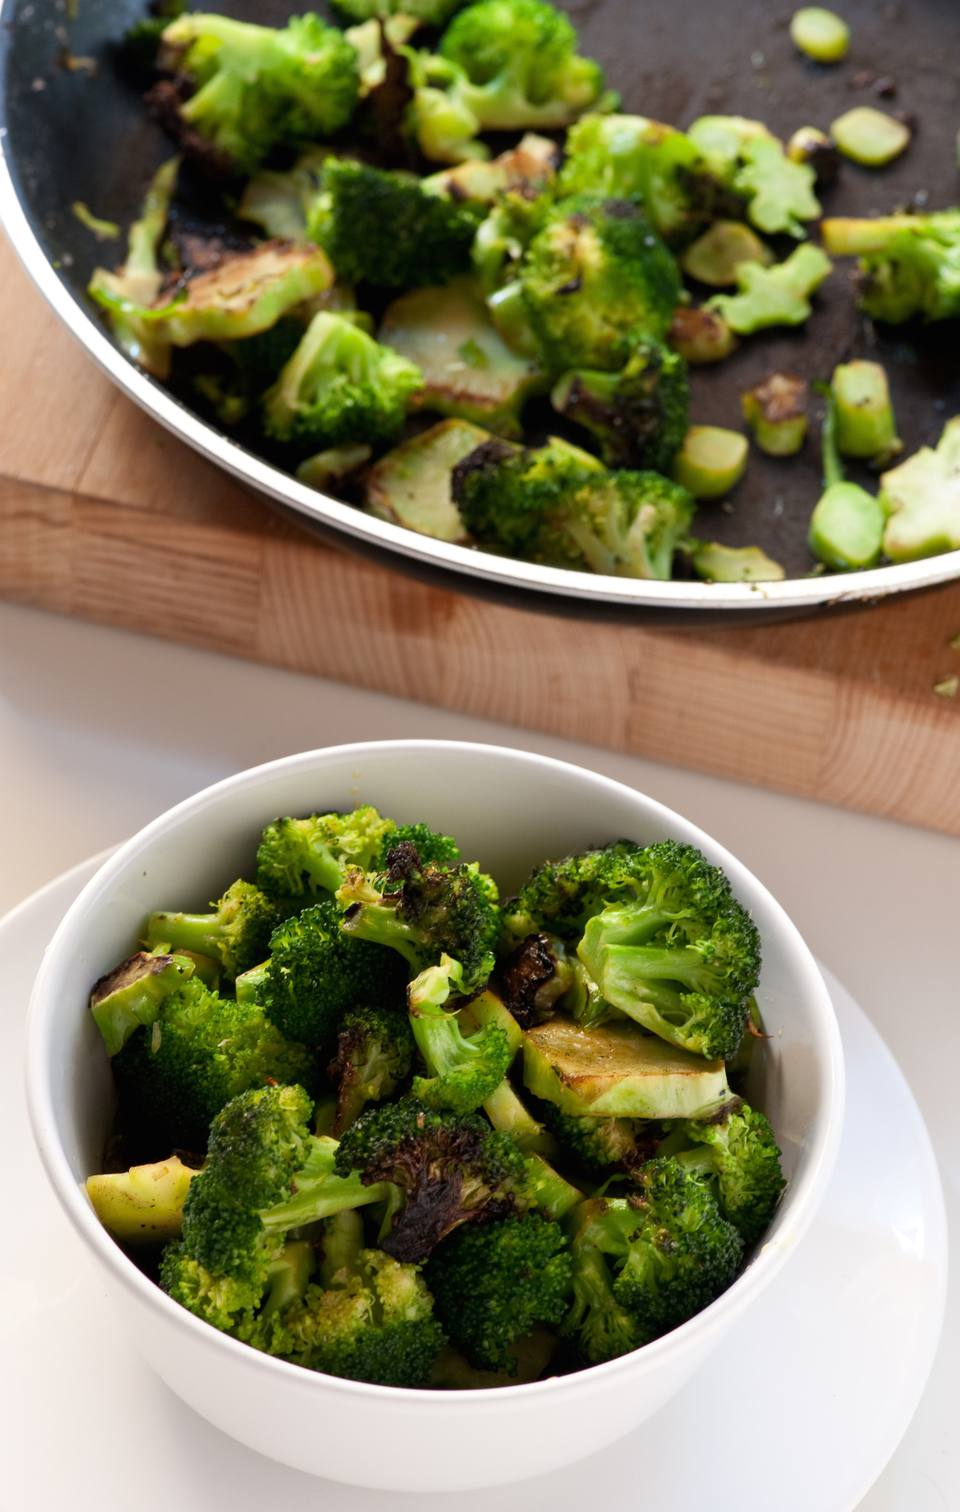 Spanish style broccoli recipe with olives and ham.